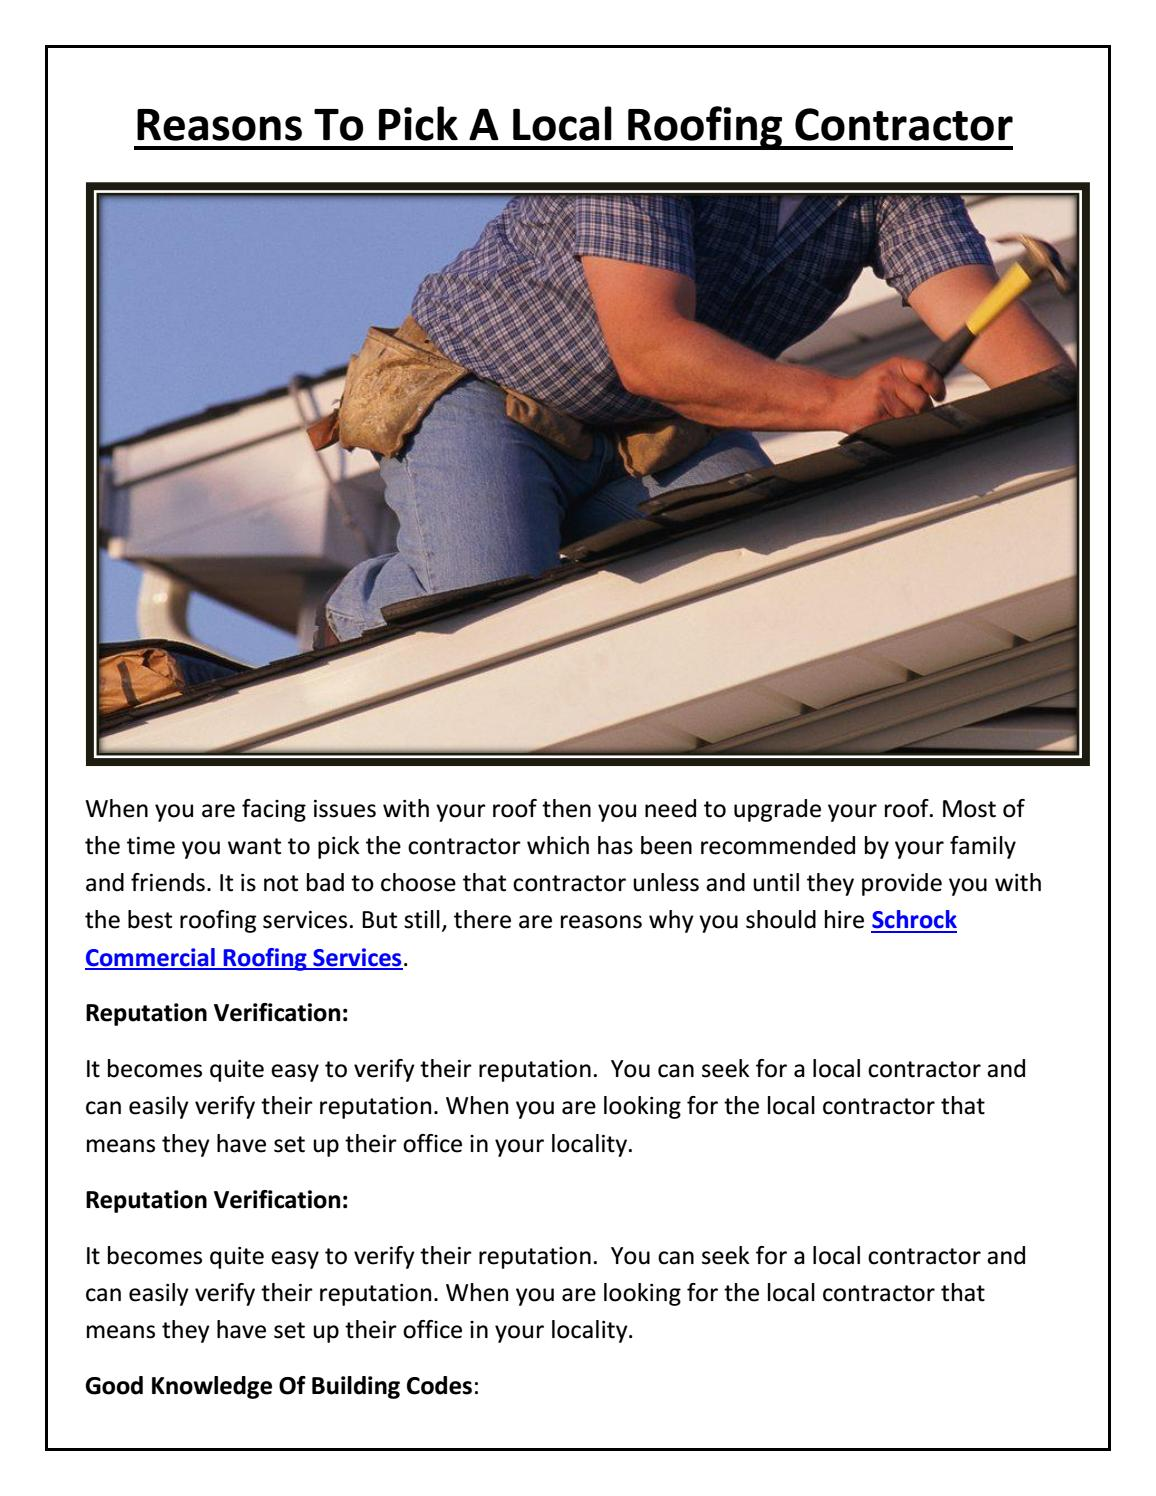 Reasons To Pick A Local Roofing Contractor